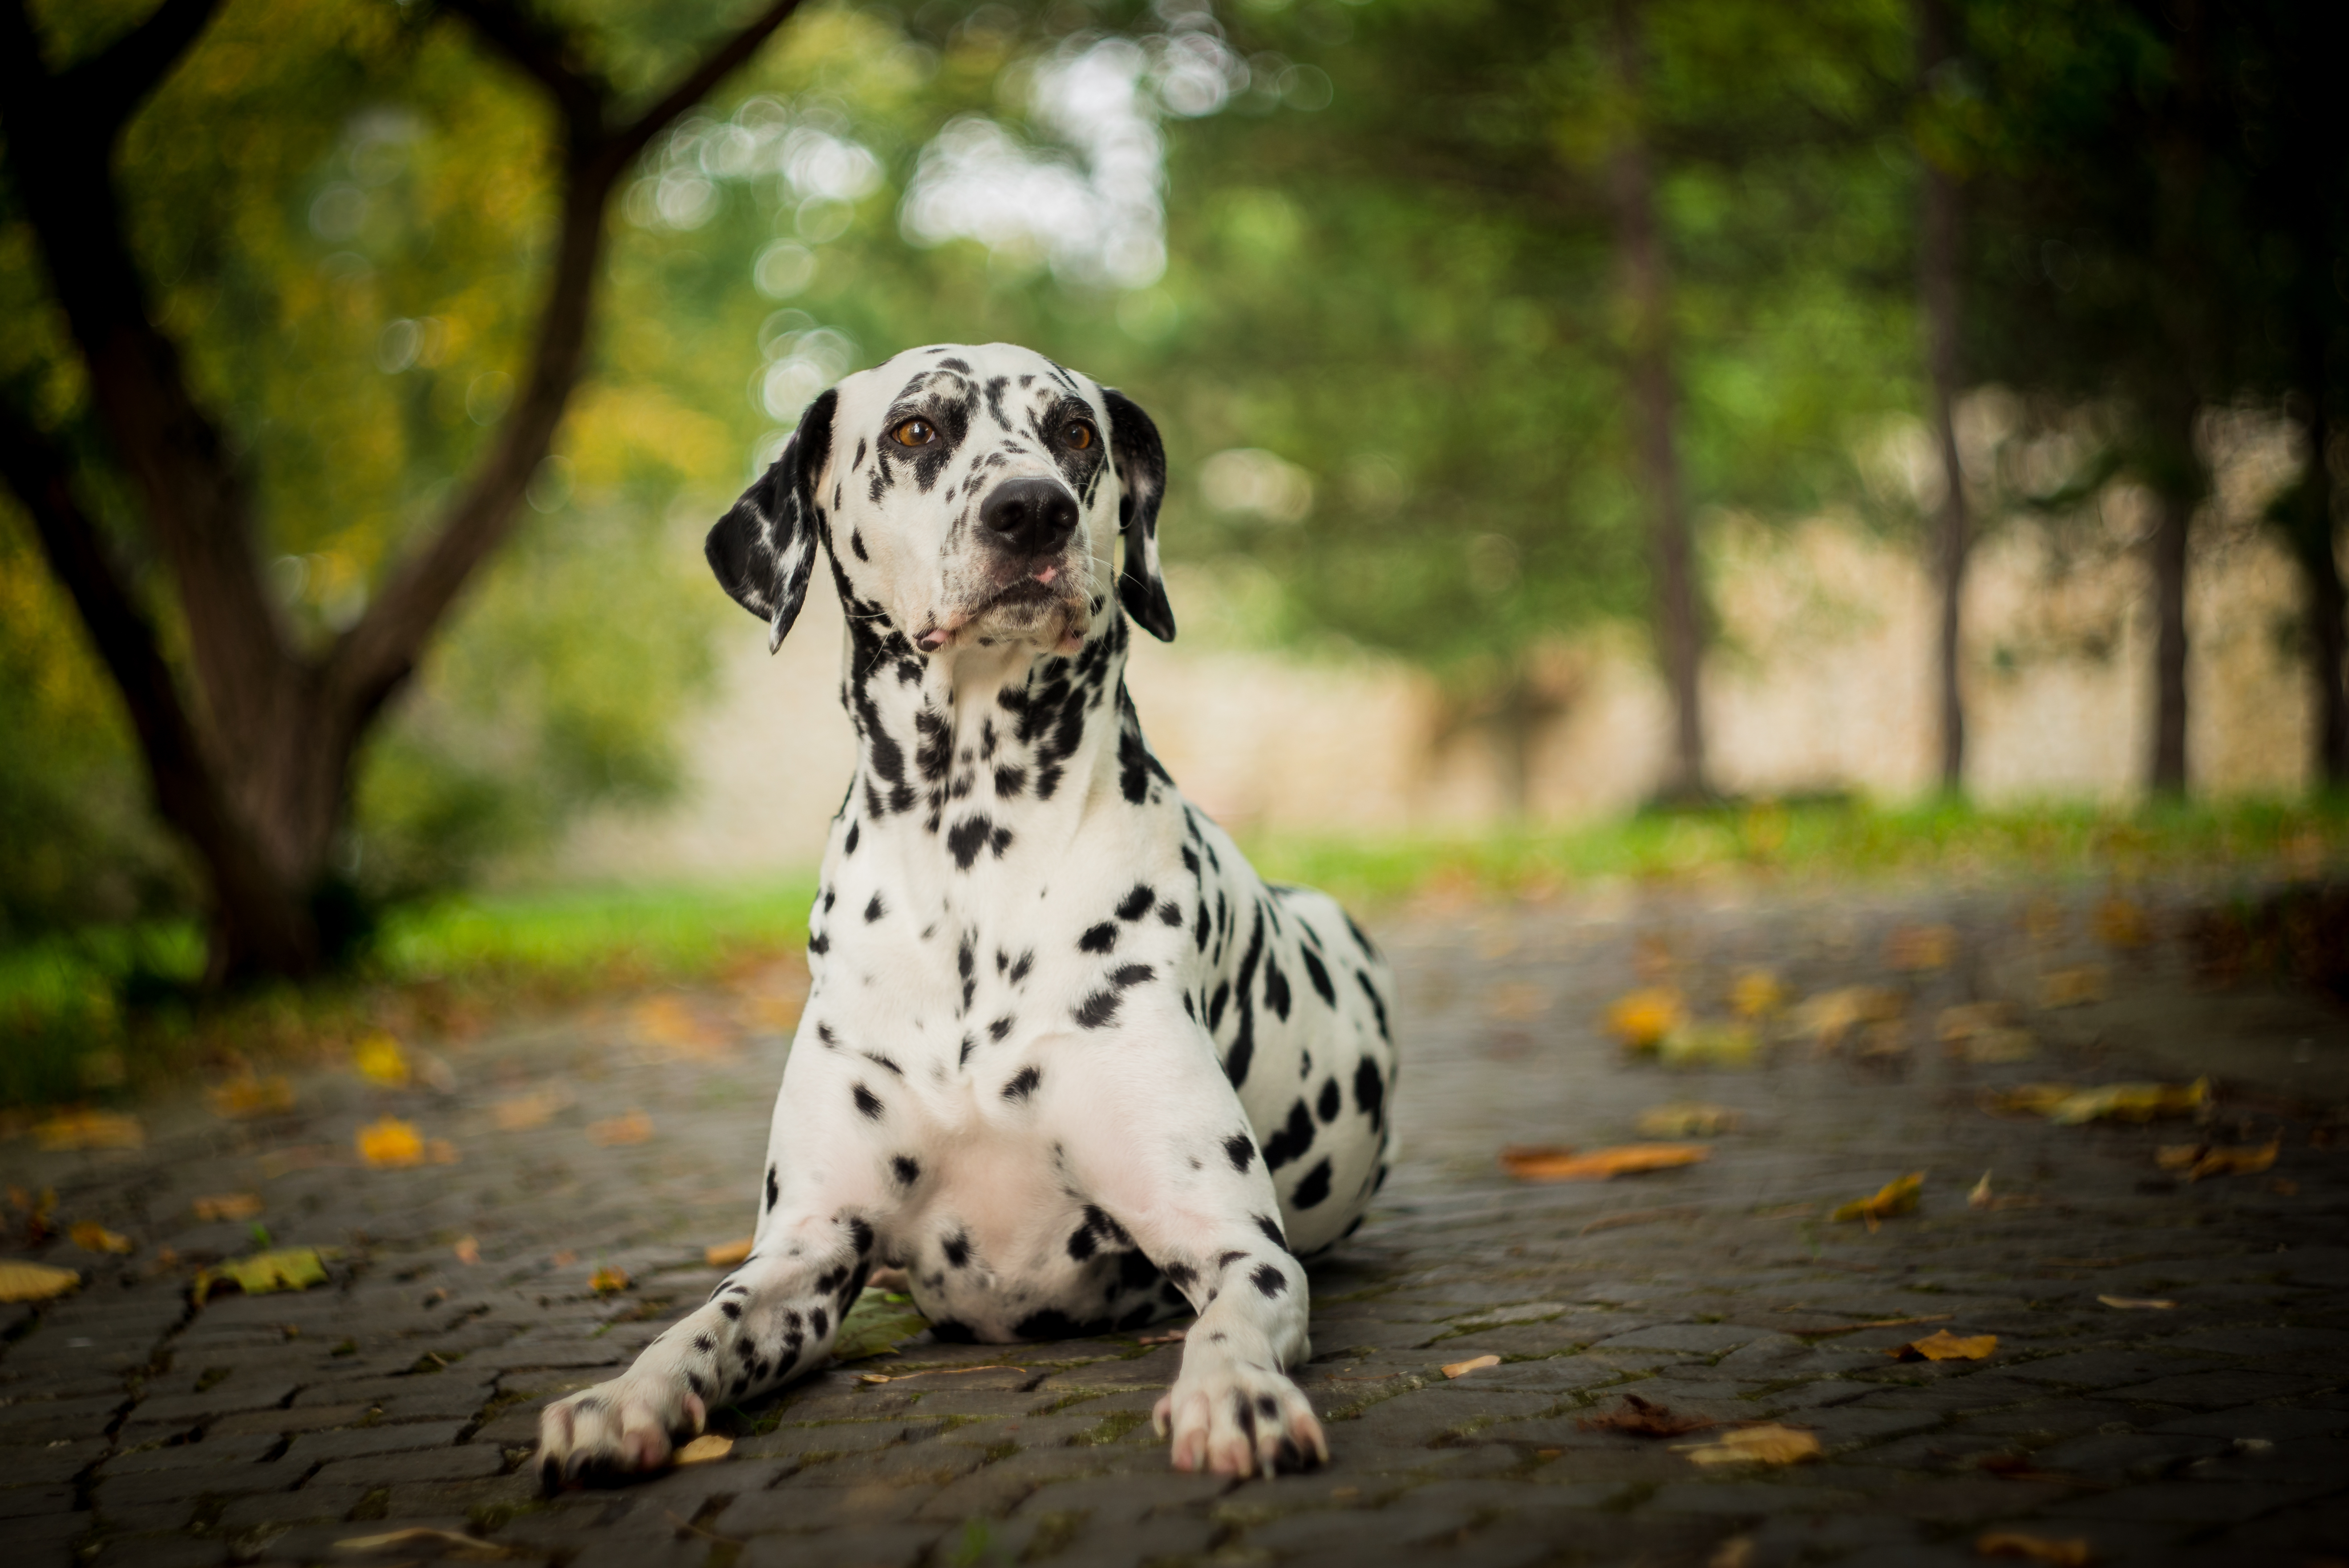 dalmatian laying on the floor in a forest